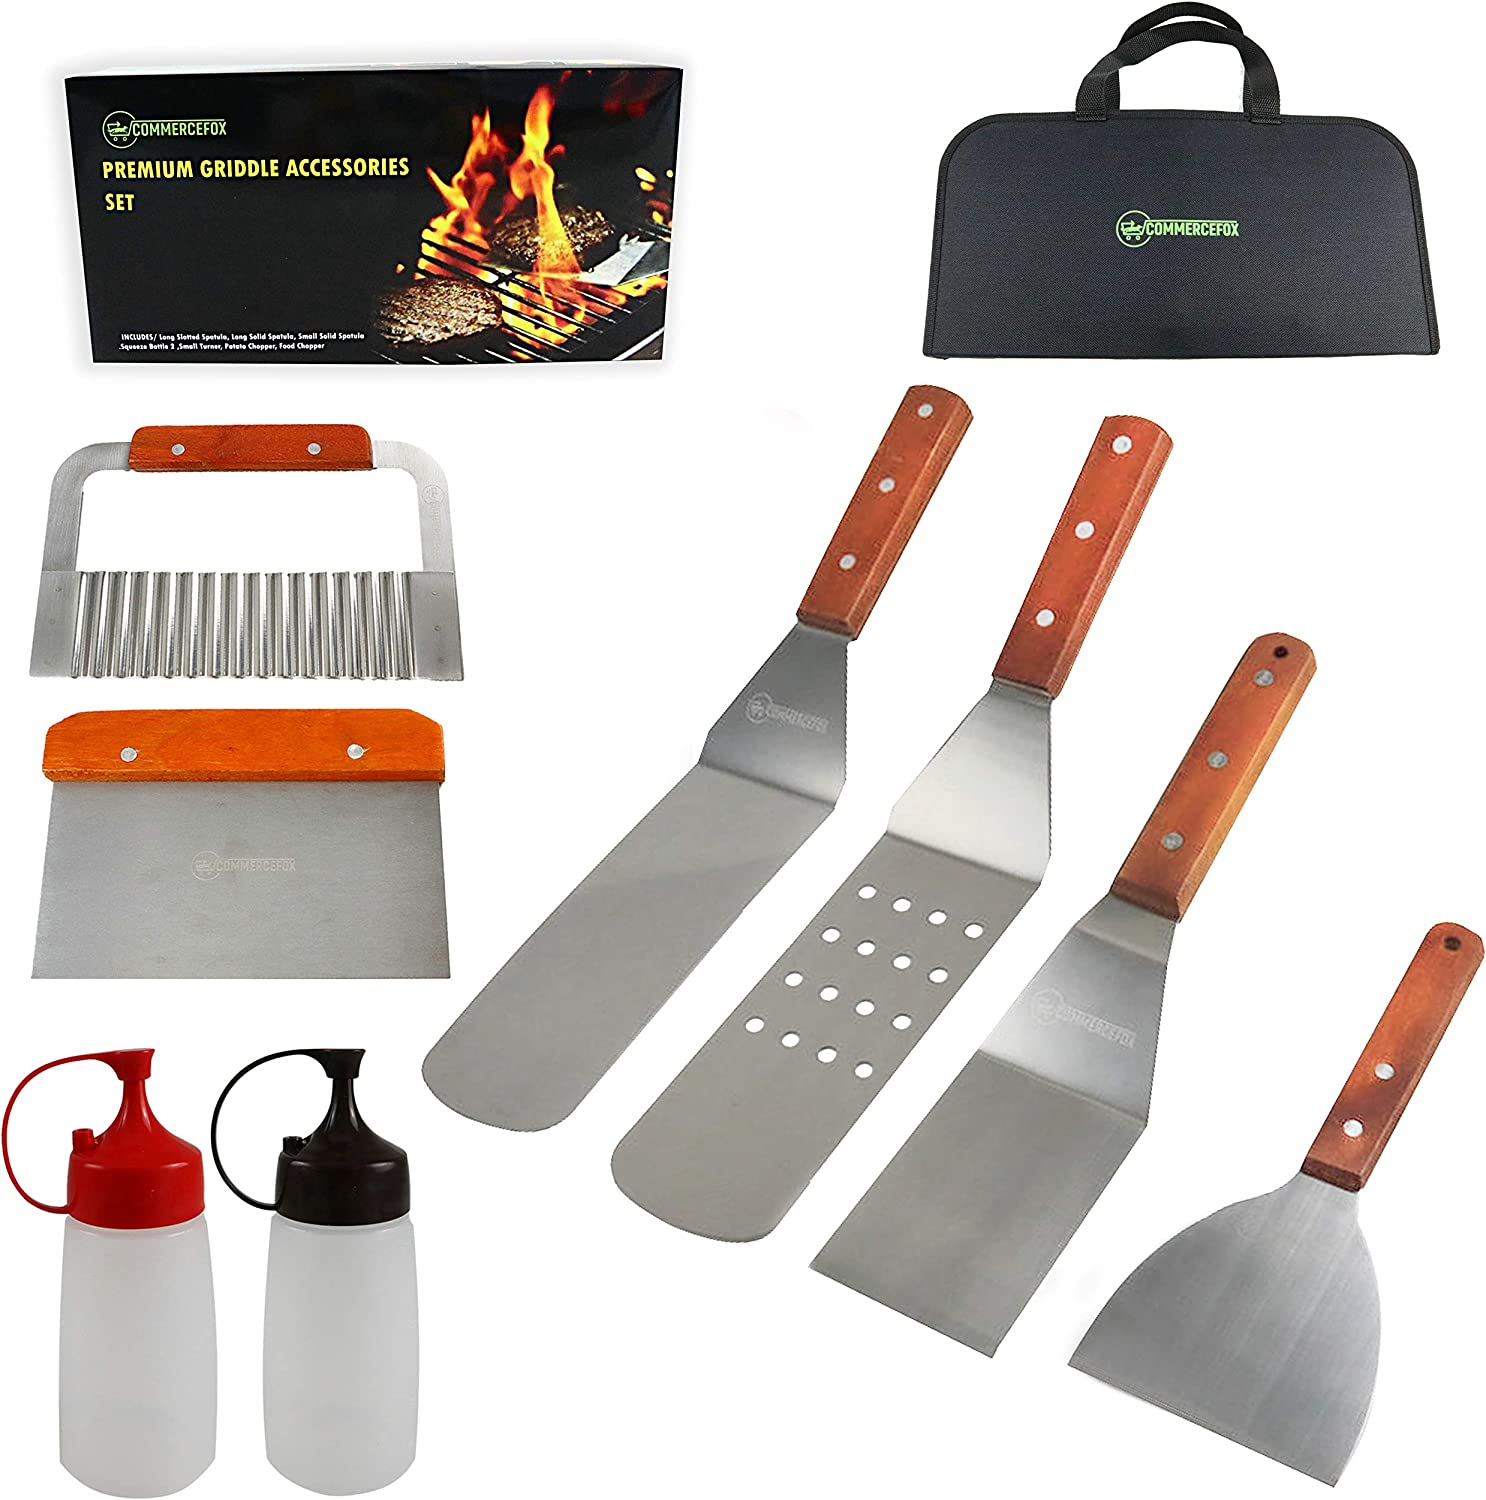 CommerceFox Griddle Accessories 9Pcs Griddle Tools Spatulas 2 Squeeze Bottles, Carrying Bag Heavy Duty Wooden Handle & Stainless Steel Perfect for Outdoor & Indoor Cooking Grill Set.